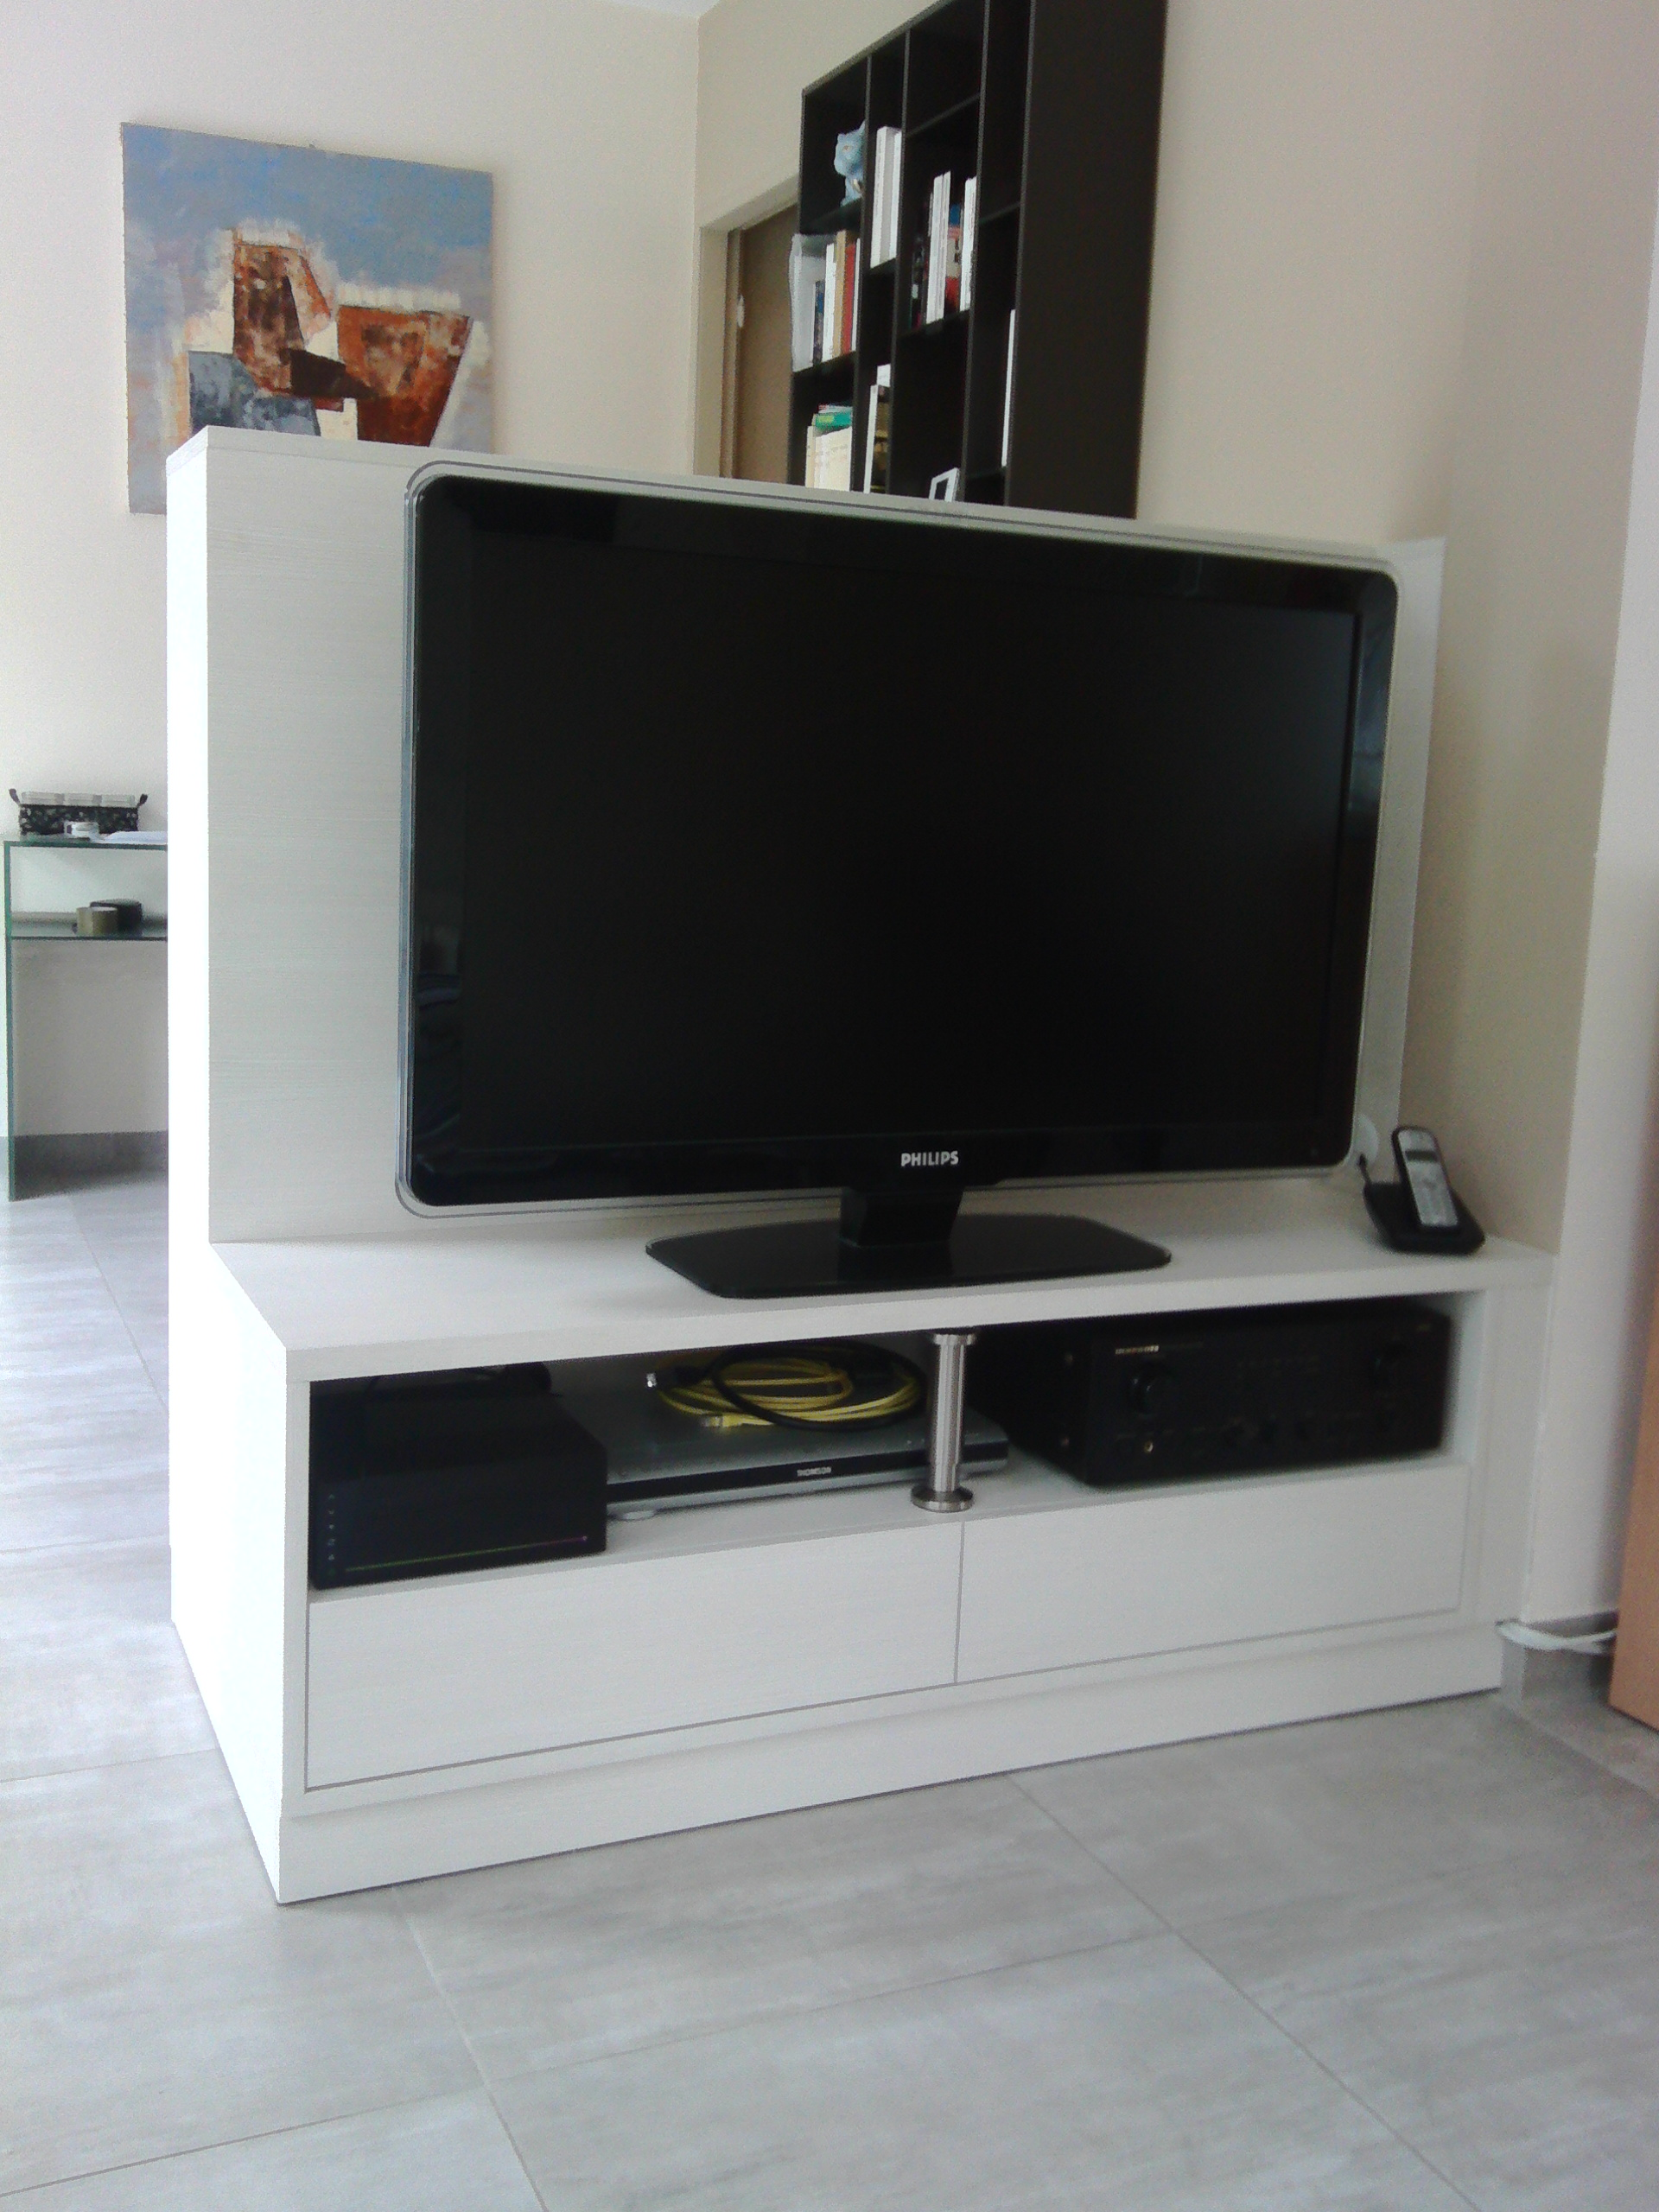 Meuble Tv Separateur De Piece - Meuble Tv En S Paration De Pi Ces Le Kiosque Amenagement[mjhdah]http://kiosque-amenagement.com/wp-content/uploads/2017/04/meuble-sur-mesure-pour-tv-et-cloisonnement-bas-a-marcq.jpg